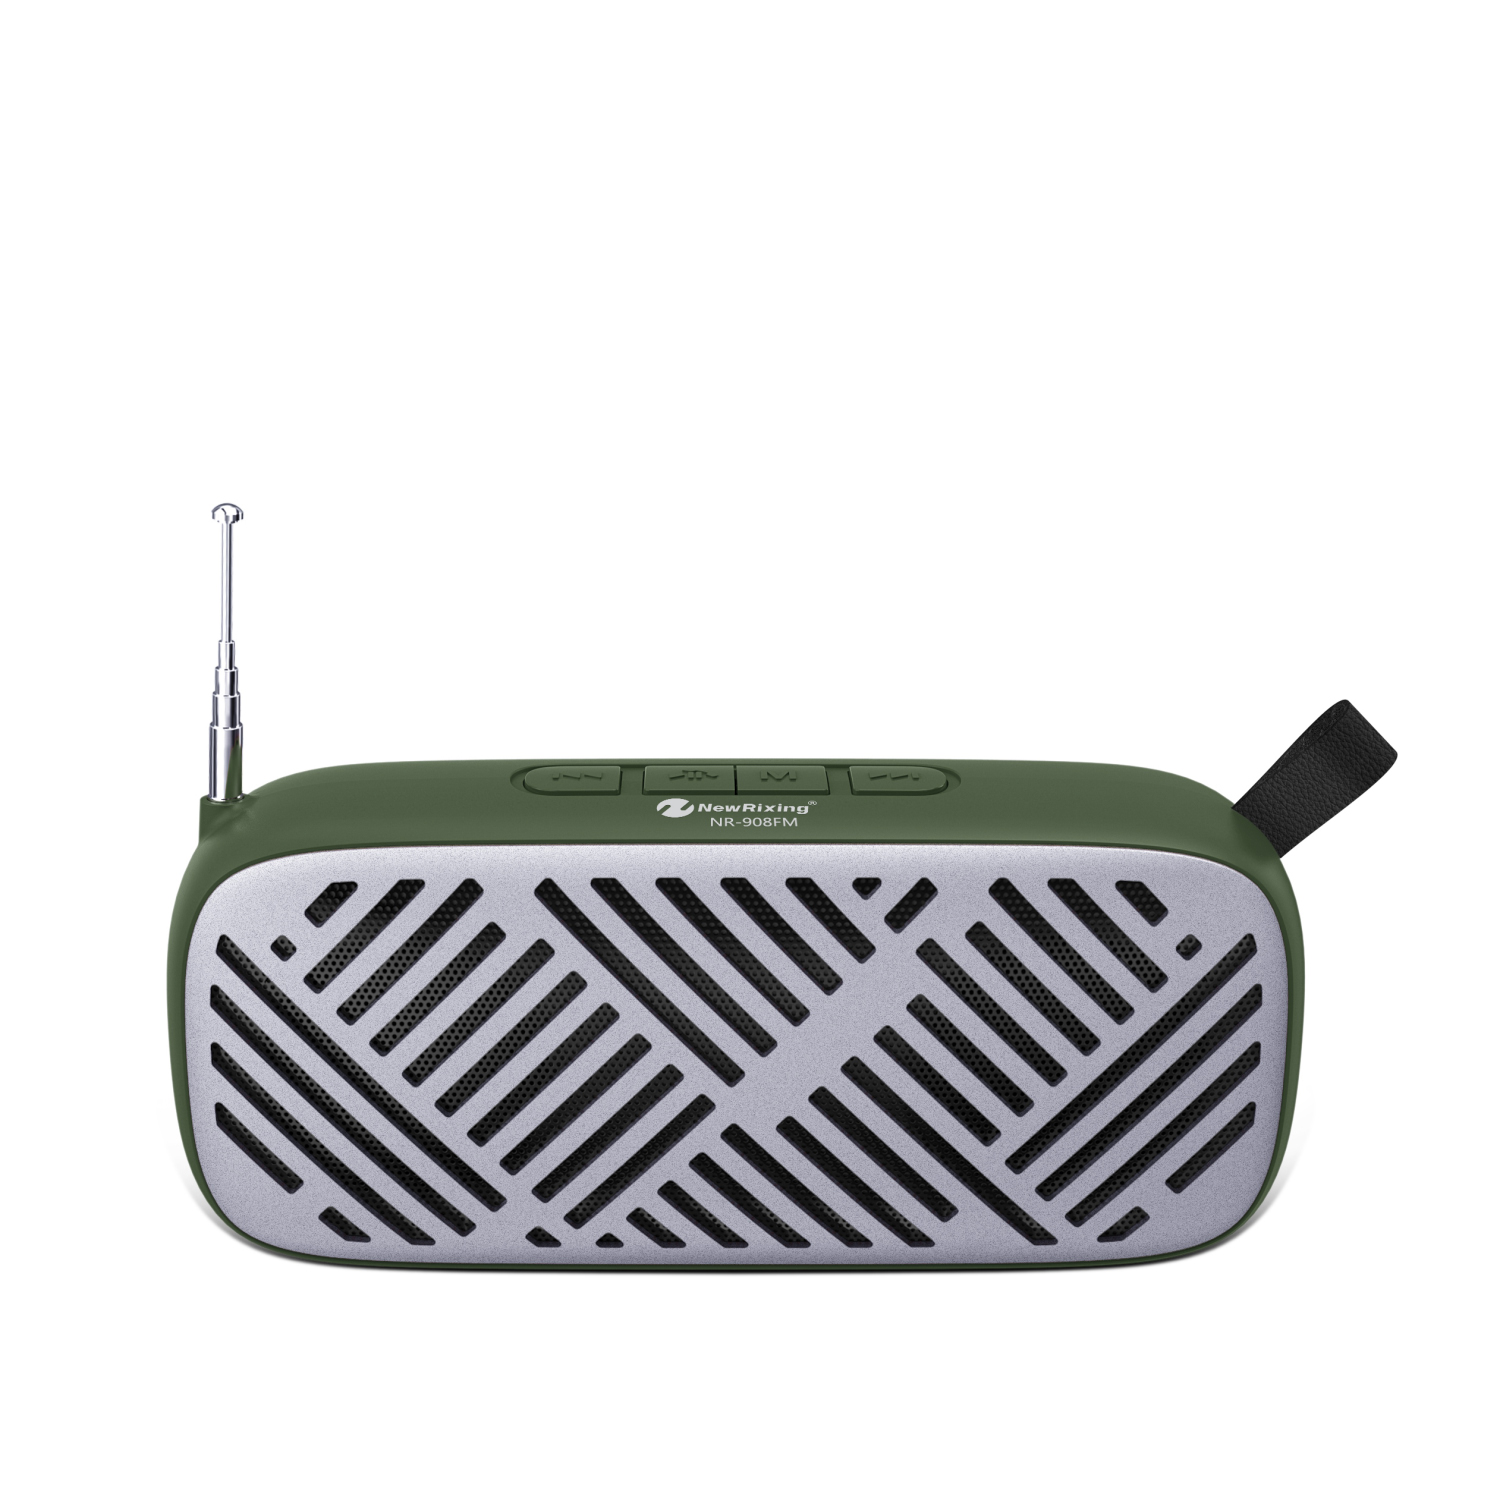 NewRixing NR-908FM Sports Outdoor Speaker